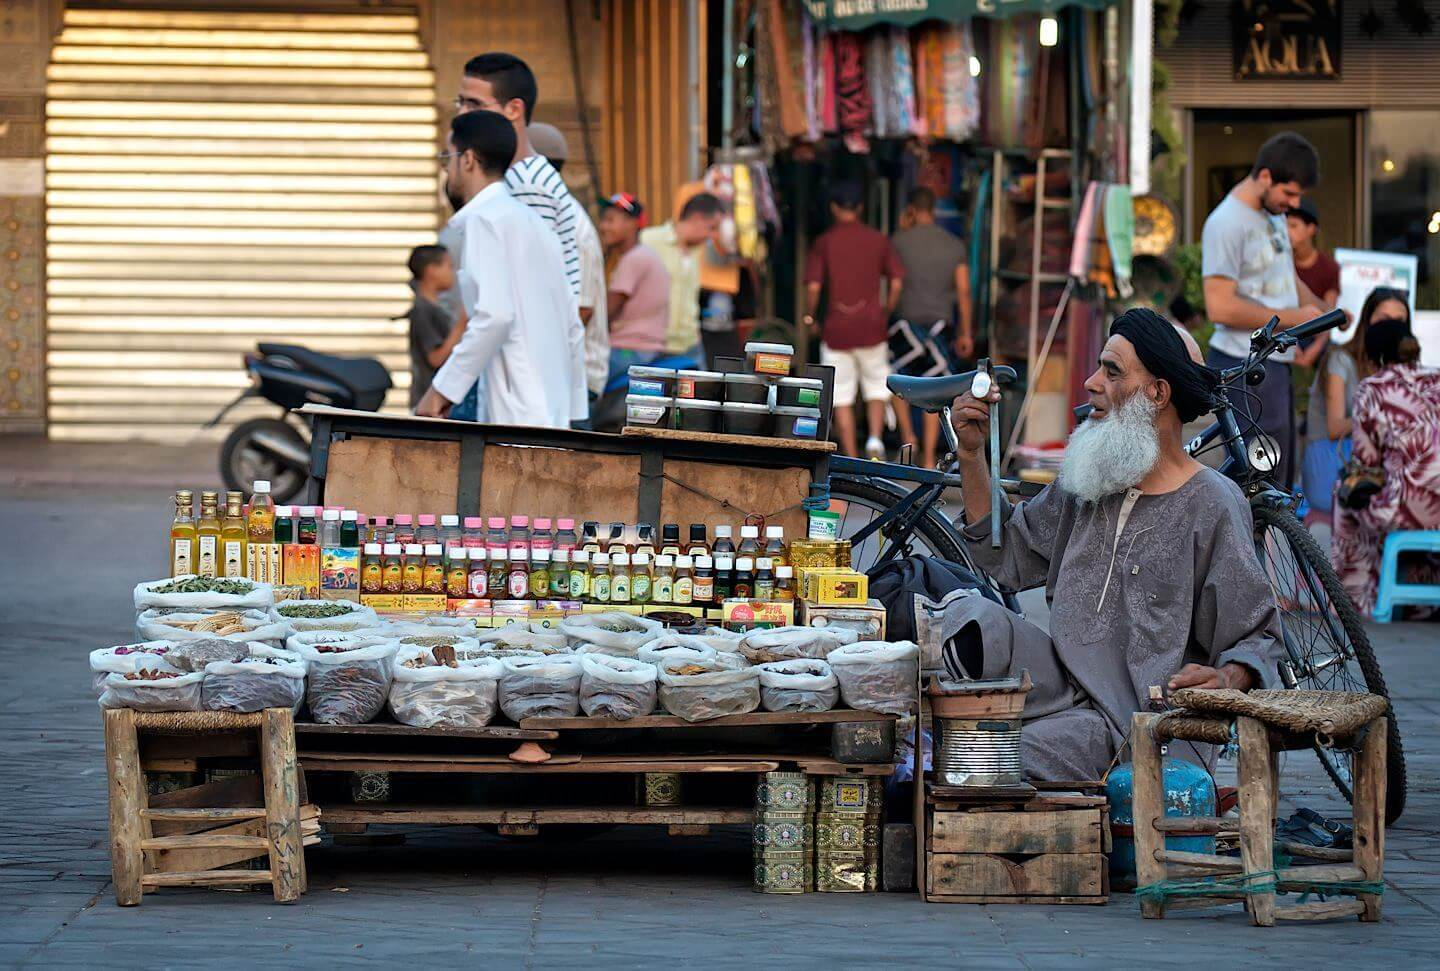 Old man with a beard selling stuff on the street; Marrakech